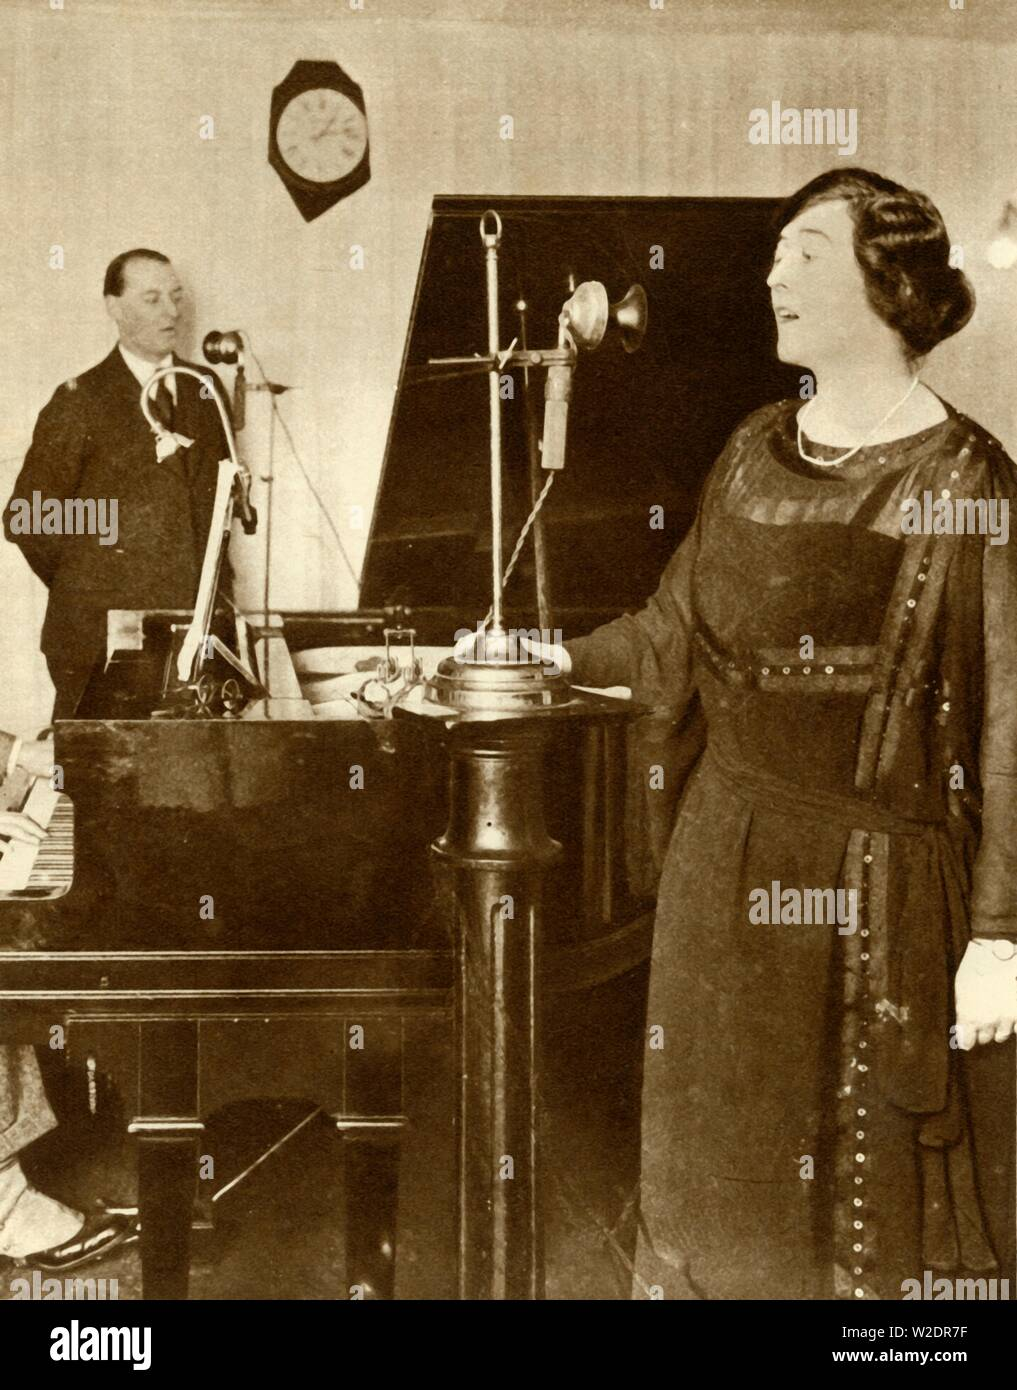 """Performers singing a duet in one of the studios of 2LO, Savoy Hill, London, 1923, (1935). 2LO was the second radio station to broadcast regularly in the United Kingdom. It began broadcasting in May 1922, and in November that year the station was transferred to the new British Broadcasting Company. From """"The Silver Jubilee Book - The Story of 25 Eventful Years in Pictures"""". [Odhams Press Ltd., London, 1935] - Stock Image"""